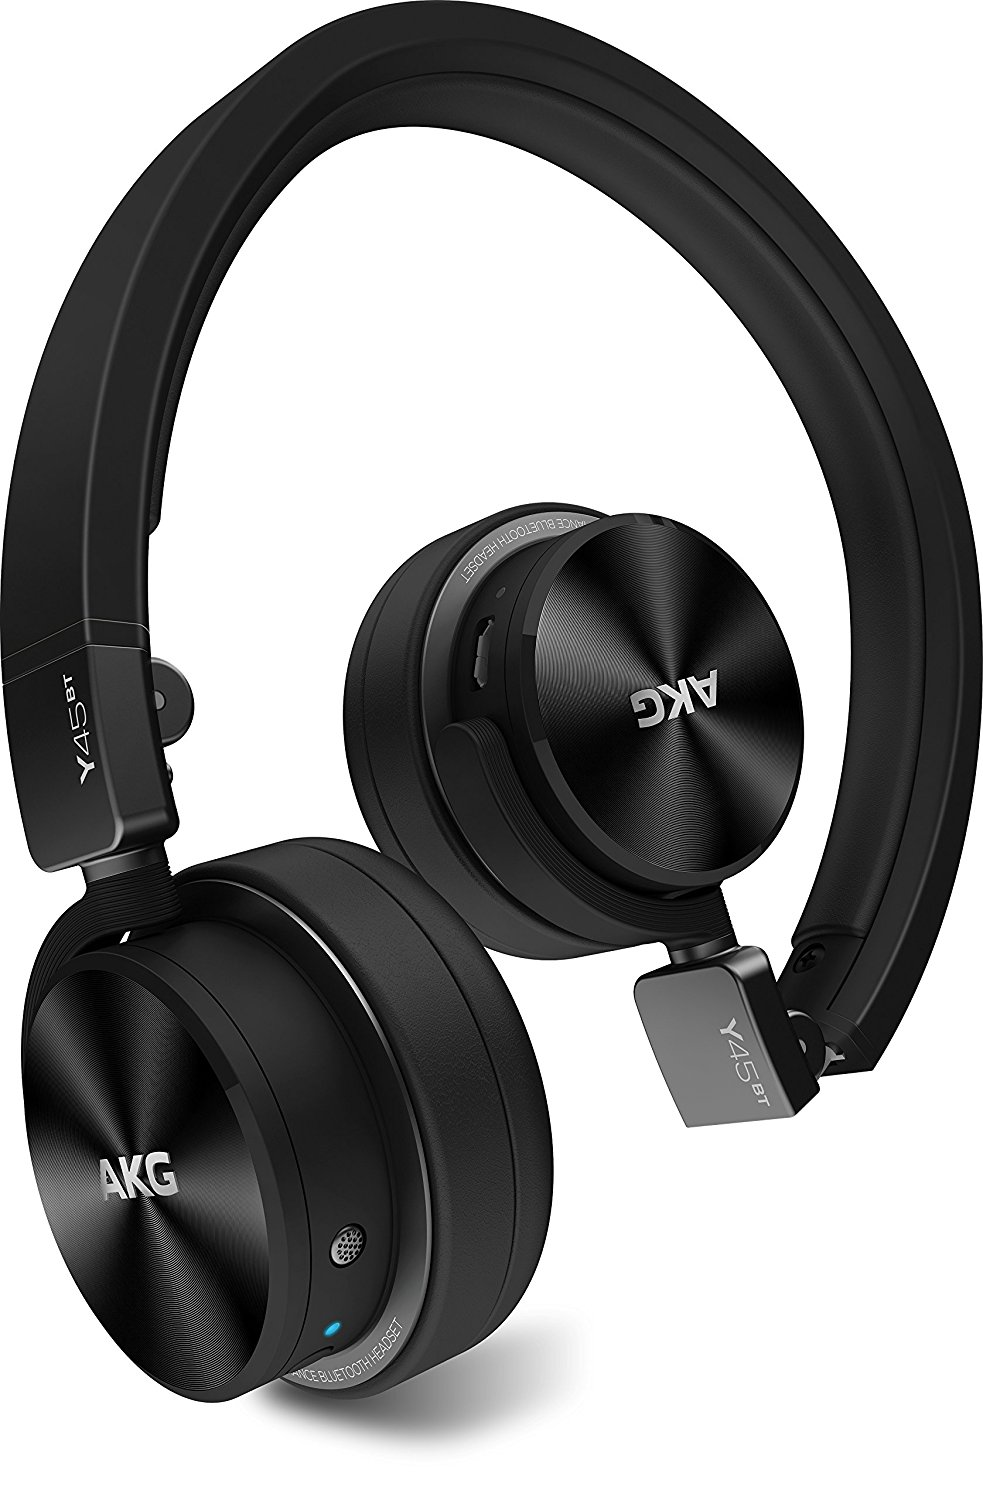 AKG Y45BT stereo Bluetooth headset, portable headset, mobile phone earphone black.